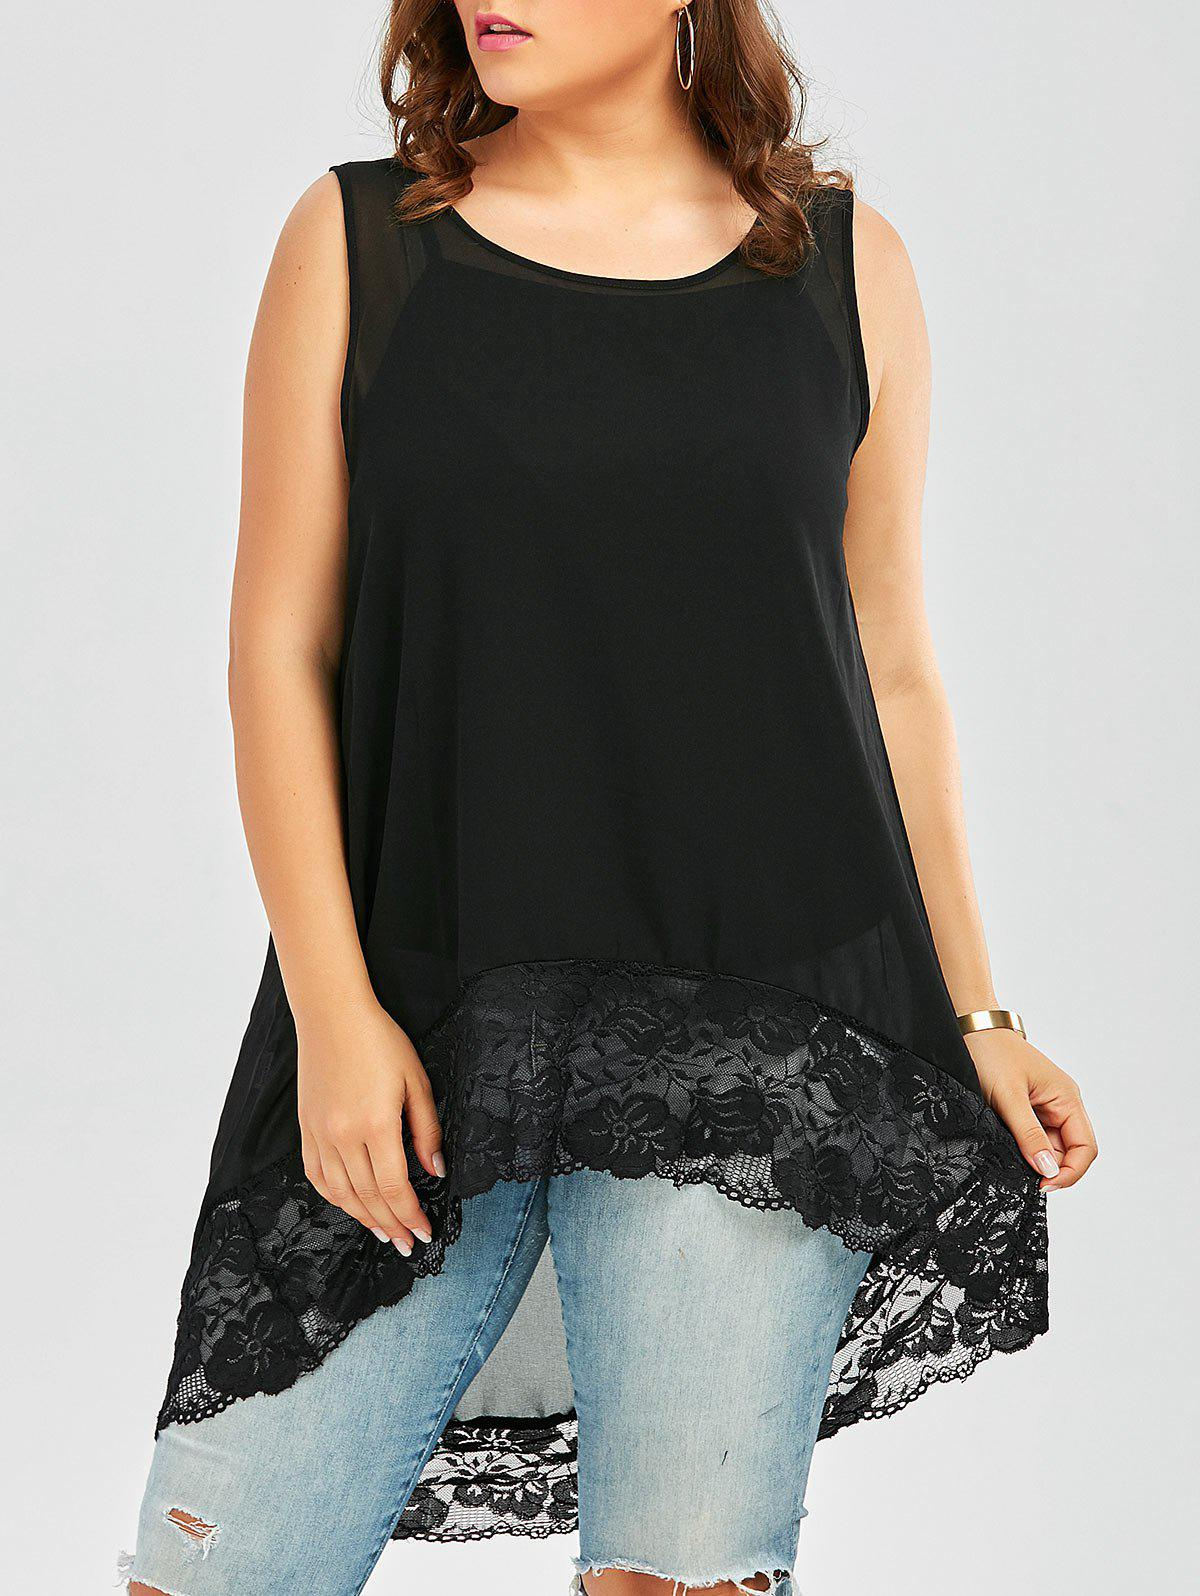 Plus Size Lace Trim  High Low Chiffon Flowy TopWOMEN<br><br>Size: 4XL; Color: BLACK; Material: Cotton Blends,Polyester; Fabric Type: Chiffon; Shirt Length: Long; Sleeve Length: Sleeveless; Collar: Scoop Neck; Style: Fashion; Season: Spring,Summer; Embellishment: Lace; Pattern Type: Solid; Weight: 0.1800kg; Package Contents: 1 x Top;